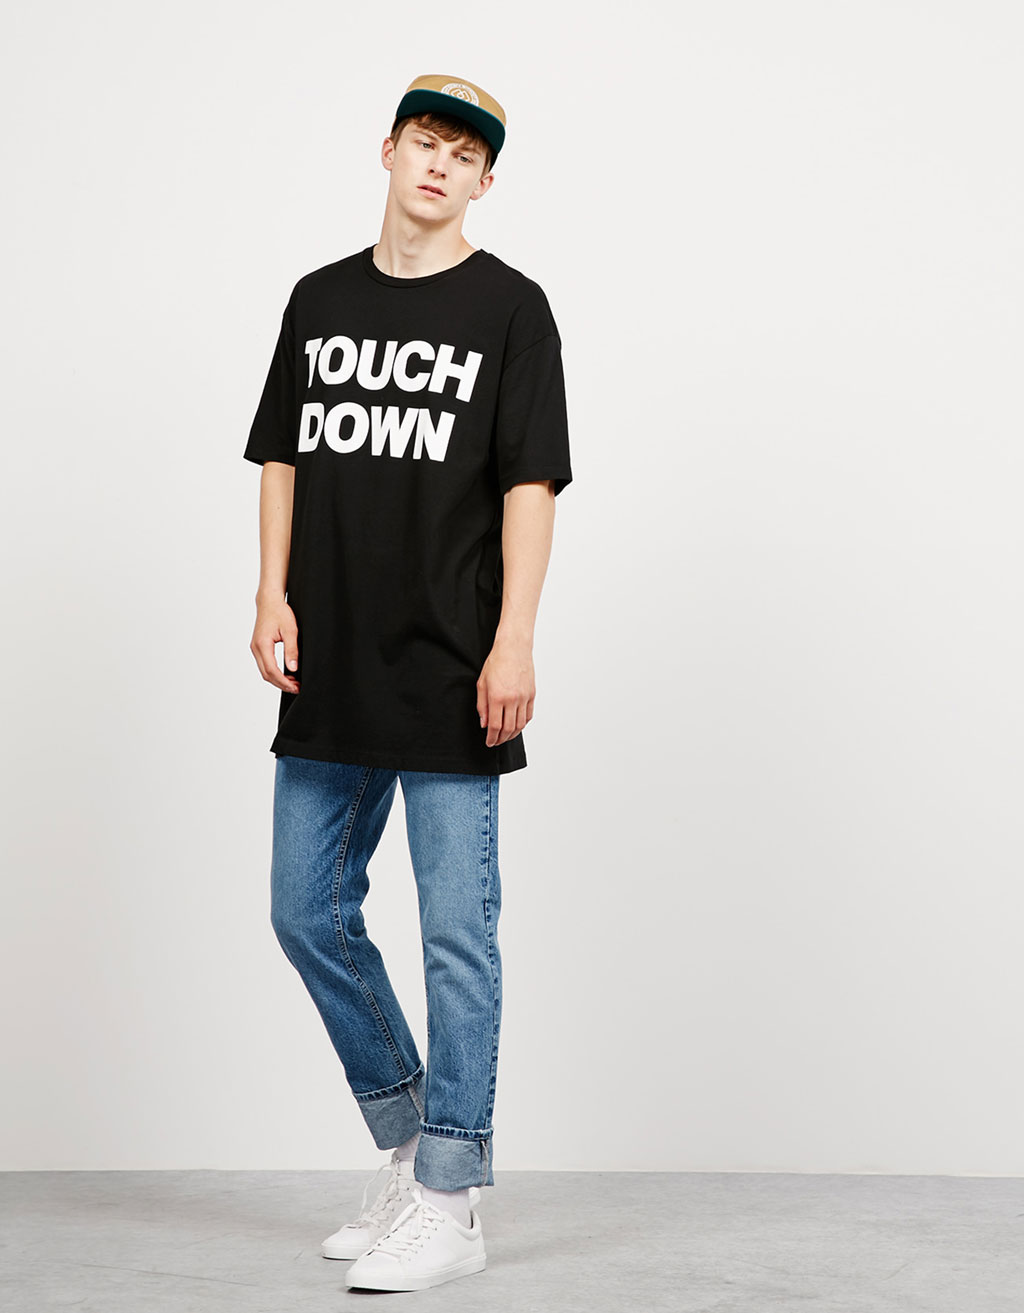 'Touch Down/Suggest' text top